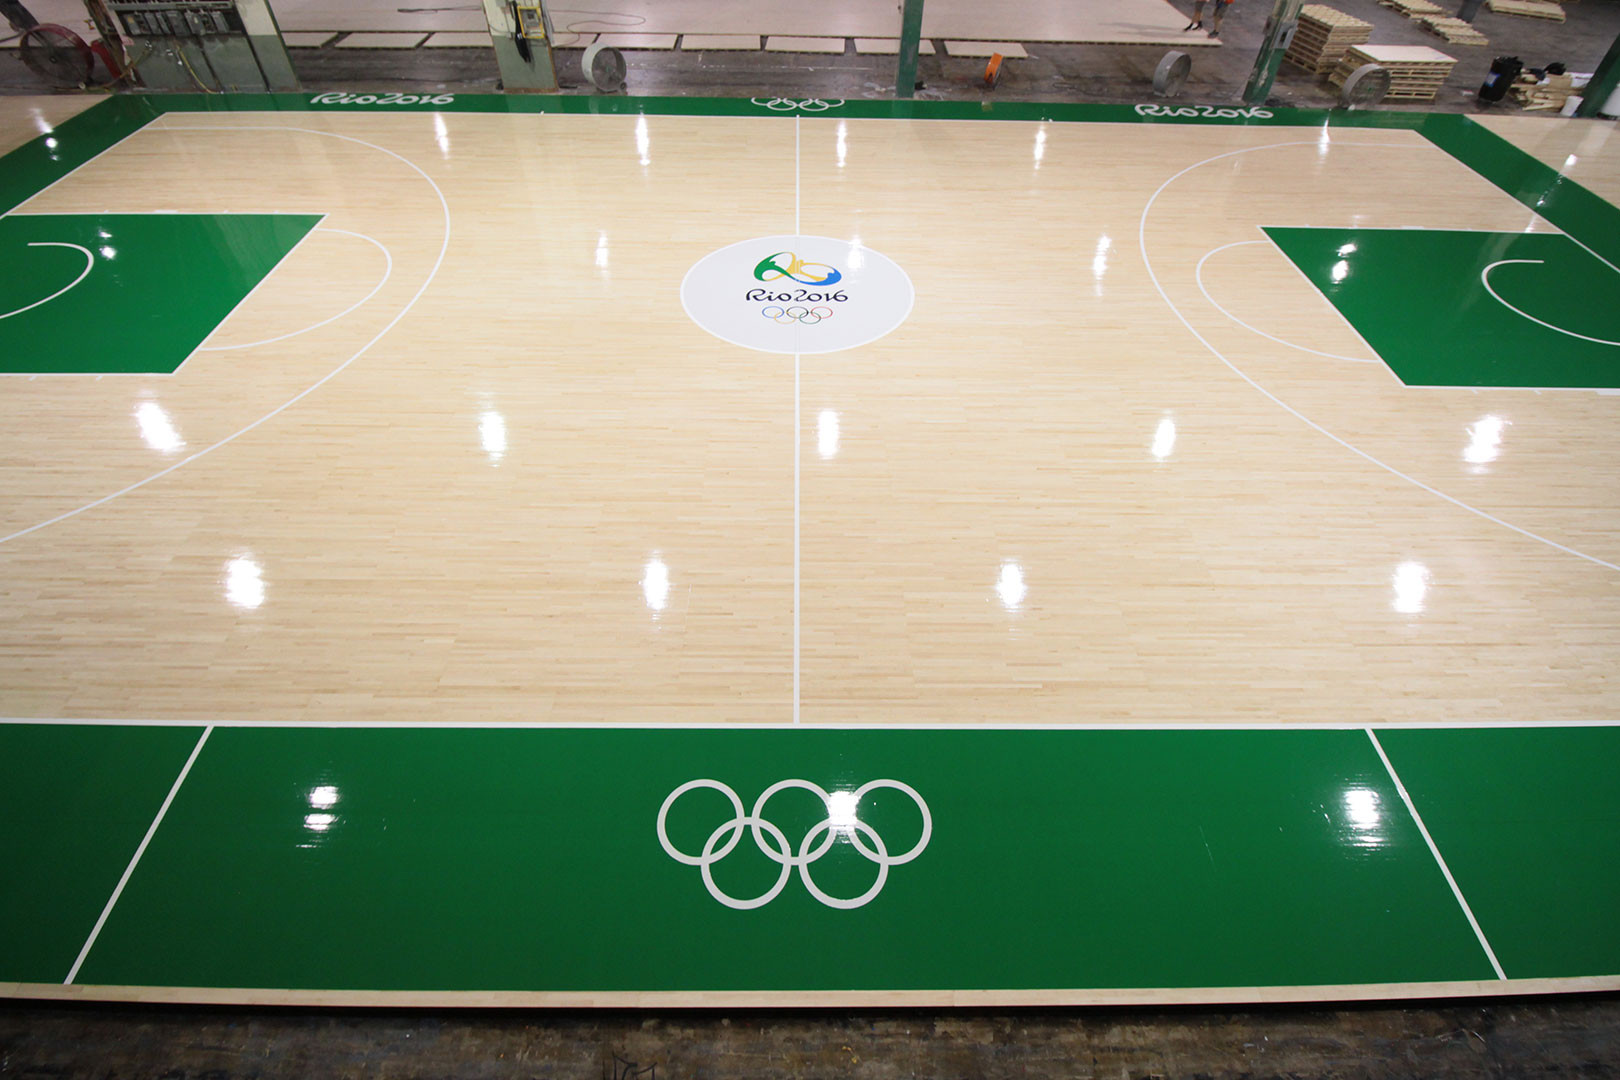 21 Elegant Praters Hardwood Flooring Chattanooga 2021 free download praters hardwood flooring chattanooga of praters finishes courts for rio olympics wrbc chattanooga intended for rioolympics1